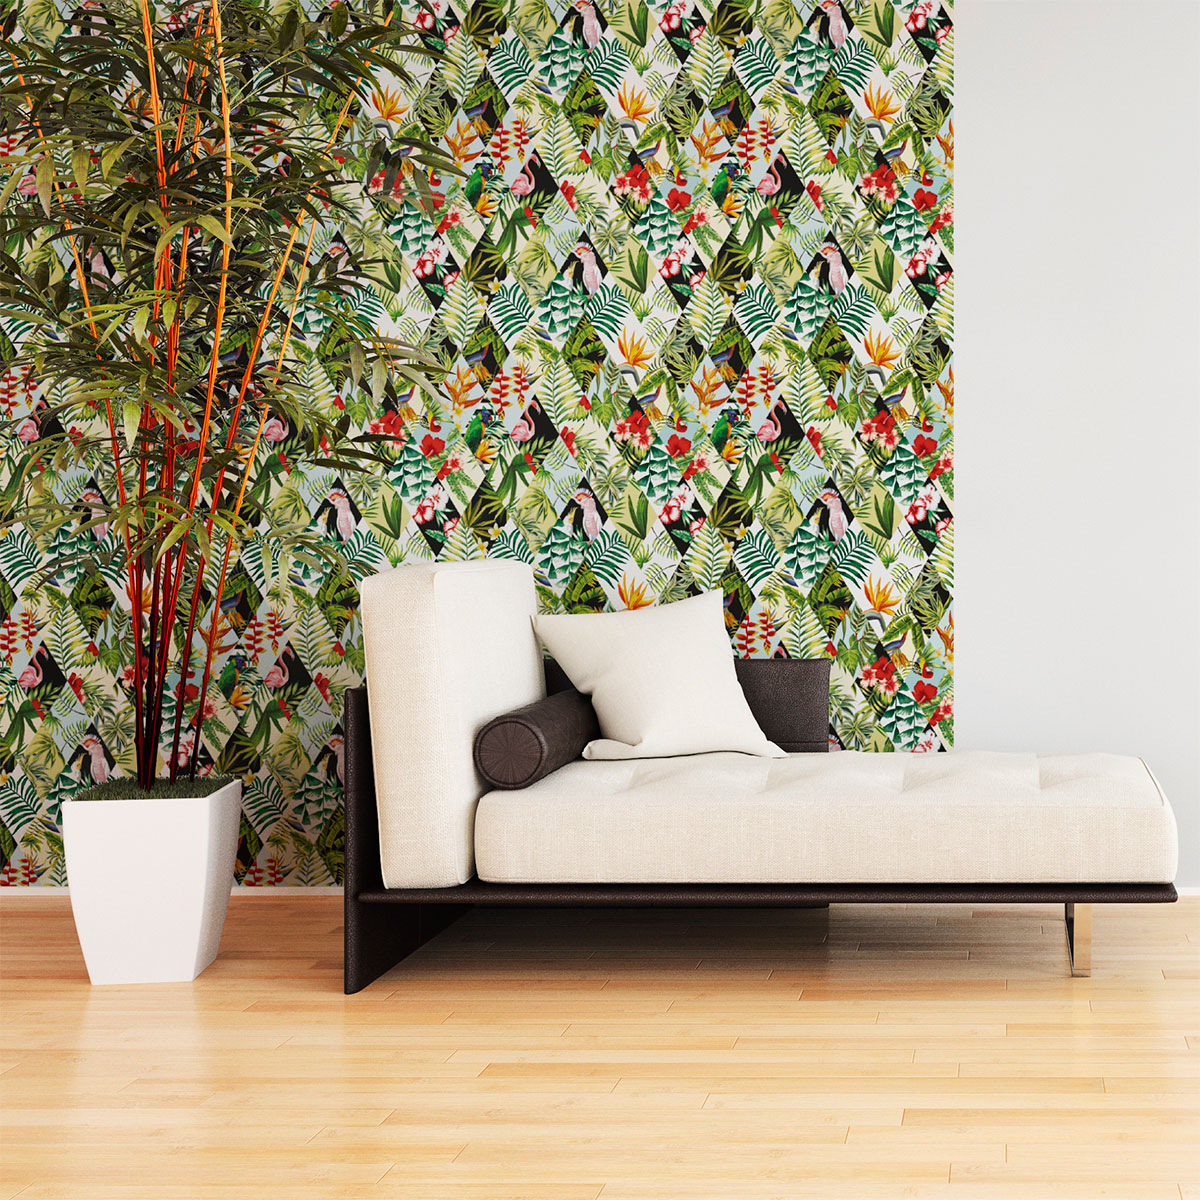 Appartement 3d Sticker Papier Peint Tropical Jungle – Stickers Nature